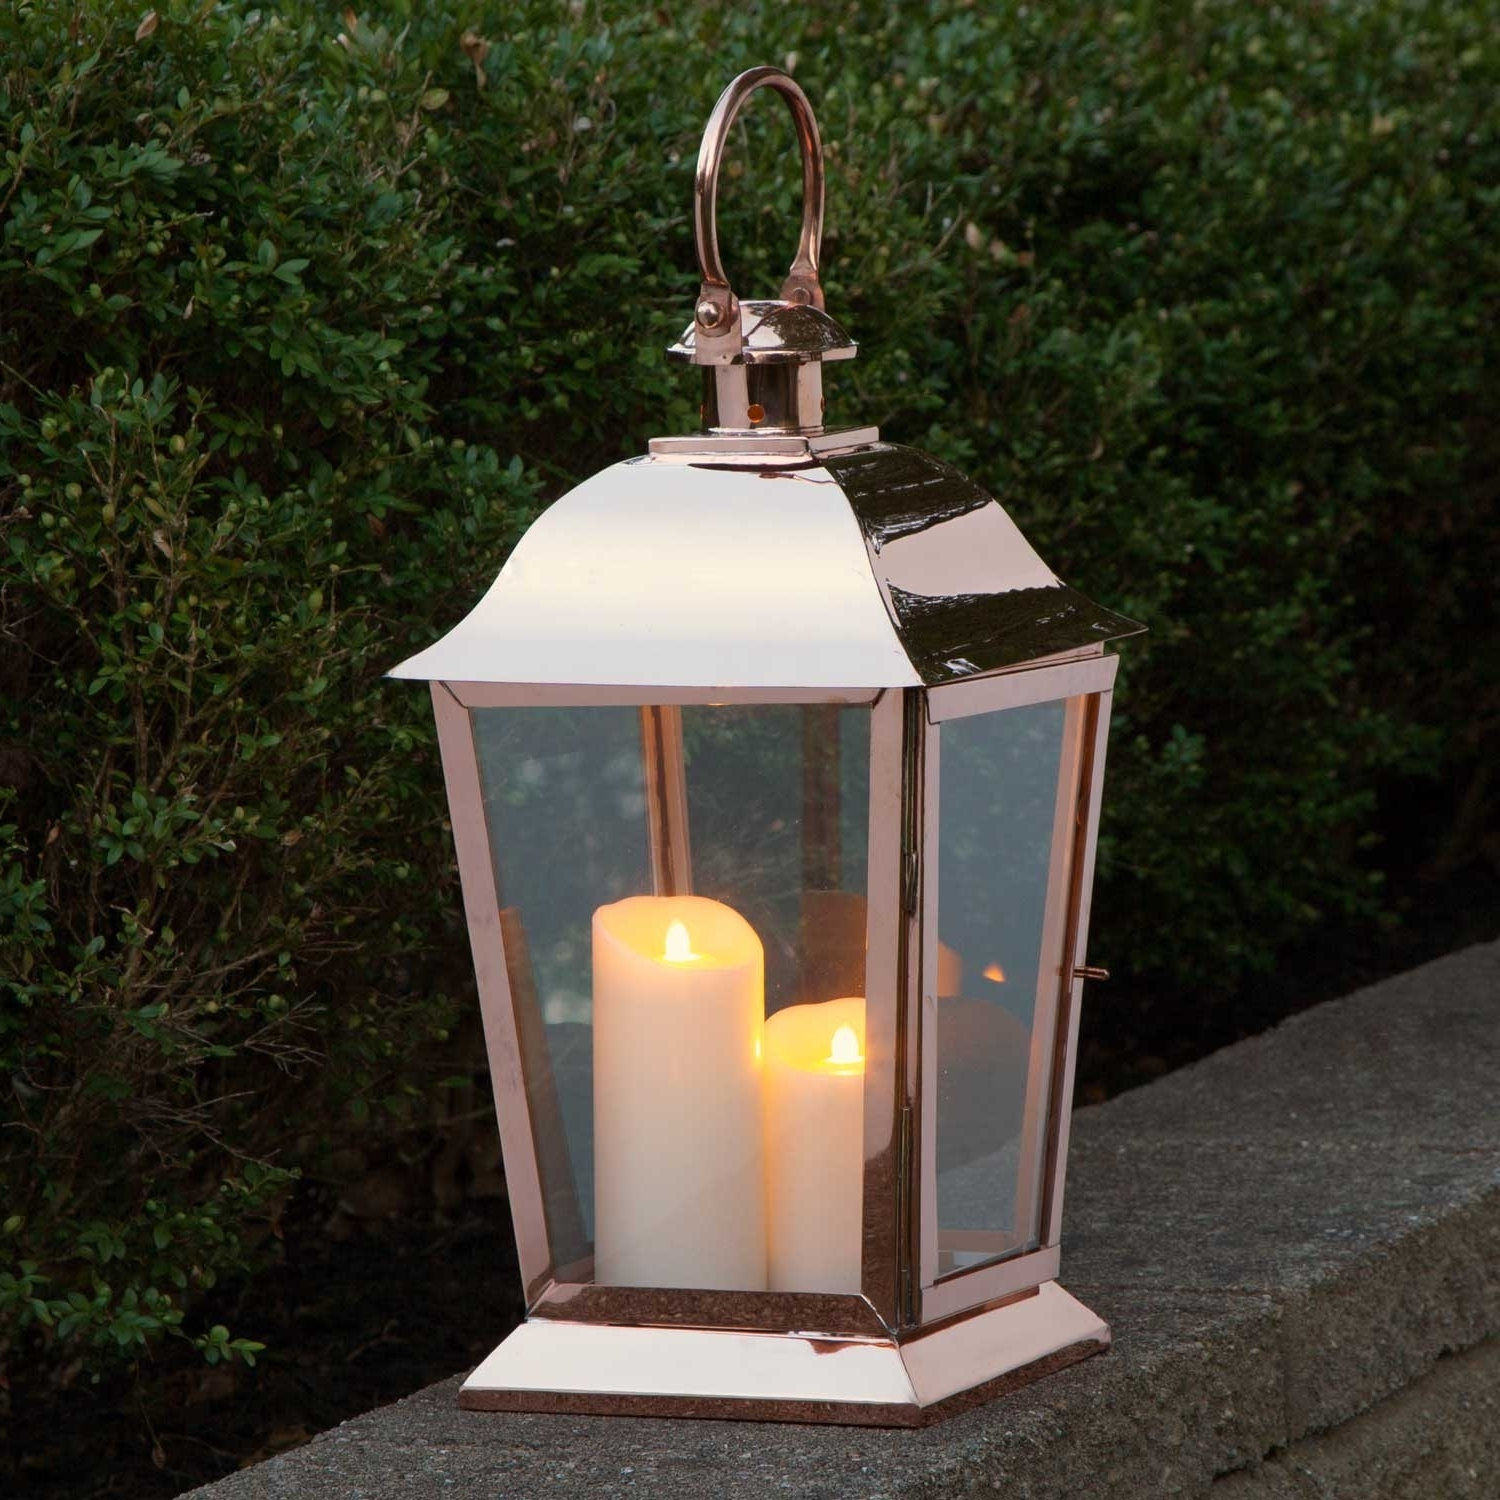 Preferred List Of Synonyms And Antonyms The Word Outdoor Candle Lanterns Grade With Outdoor Lanterns With Candles (Gallery 6 of 20)